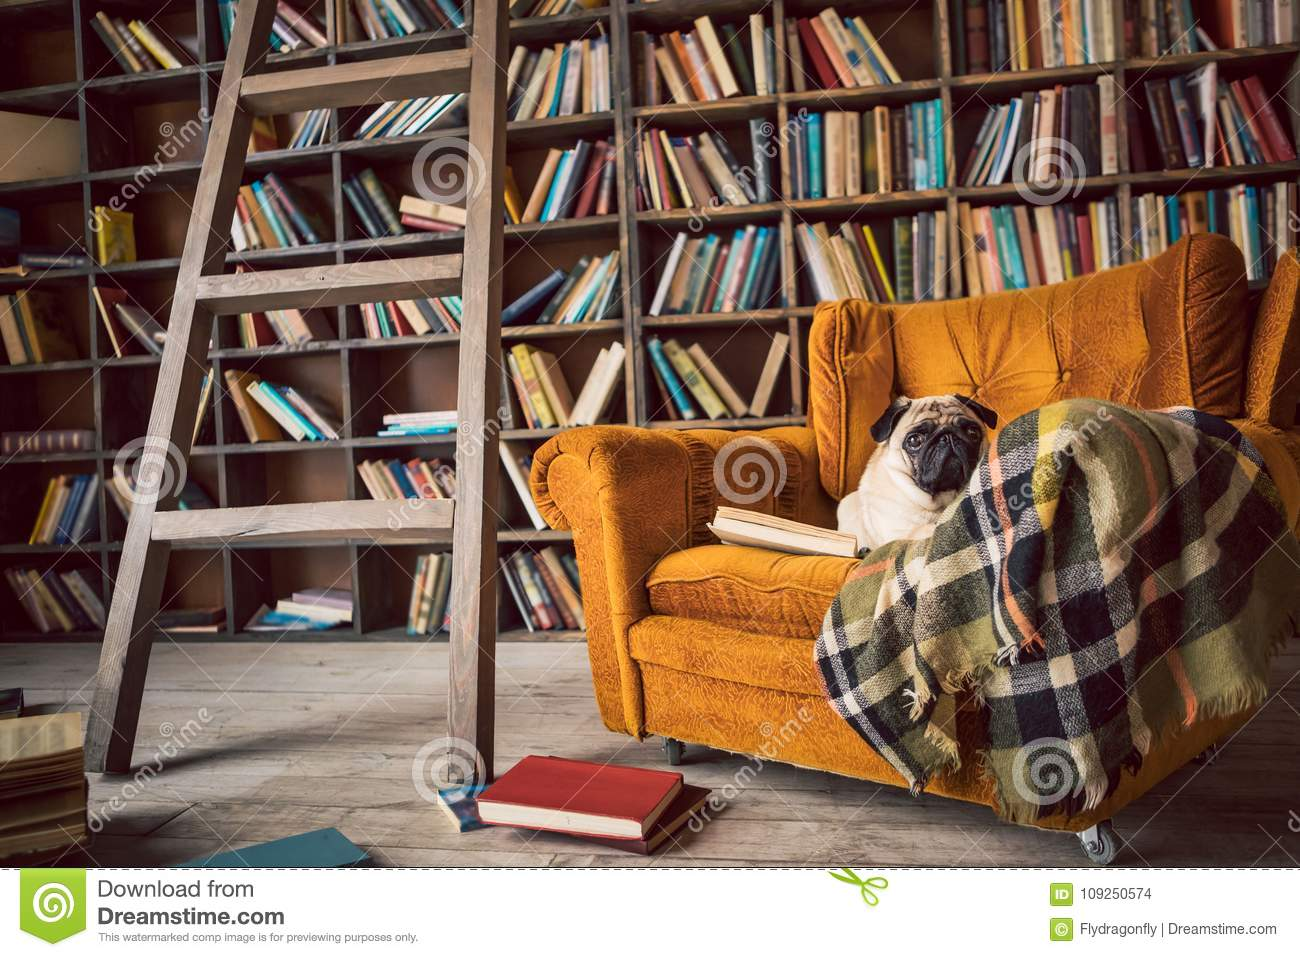 Smart dog in library chair.